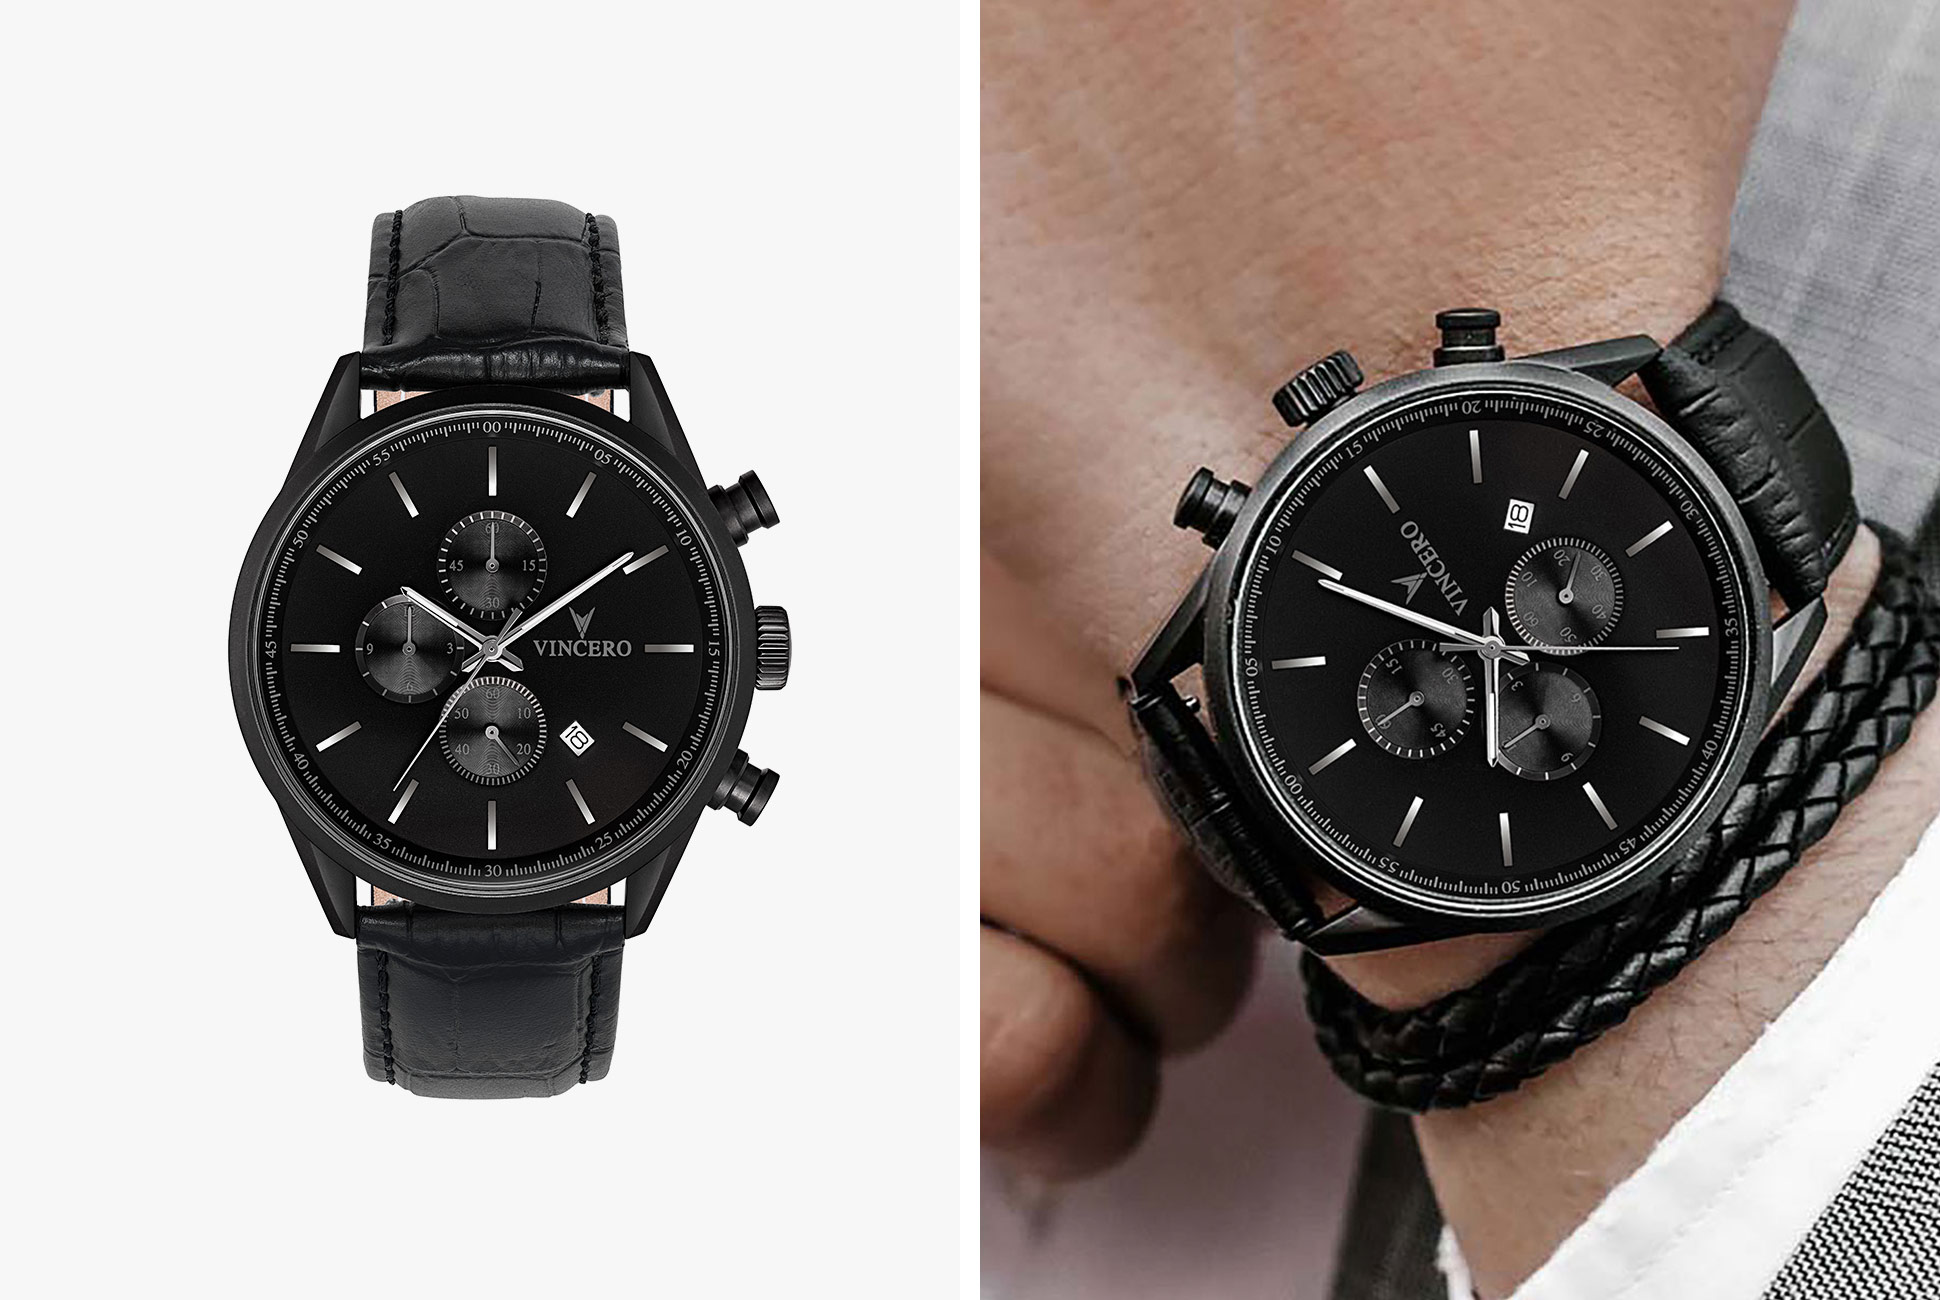 Briefings Ferrari On Track Quilted Wireless Powerbank 10k Mah Black Vincero Timepieces The Word Luxury Gets Thrown Around A Lot When Talking About Watches But What Is Watch It Most Expensive Piece You Can